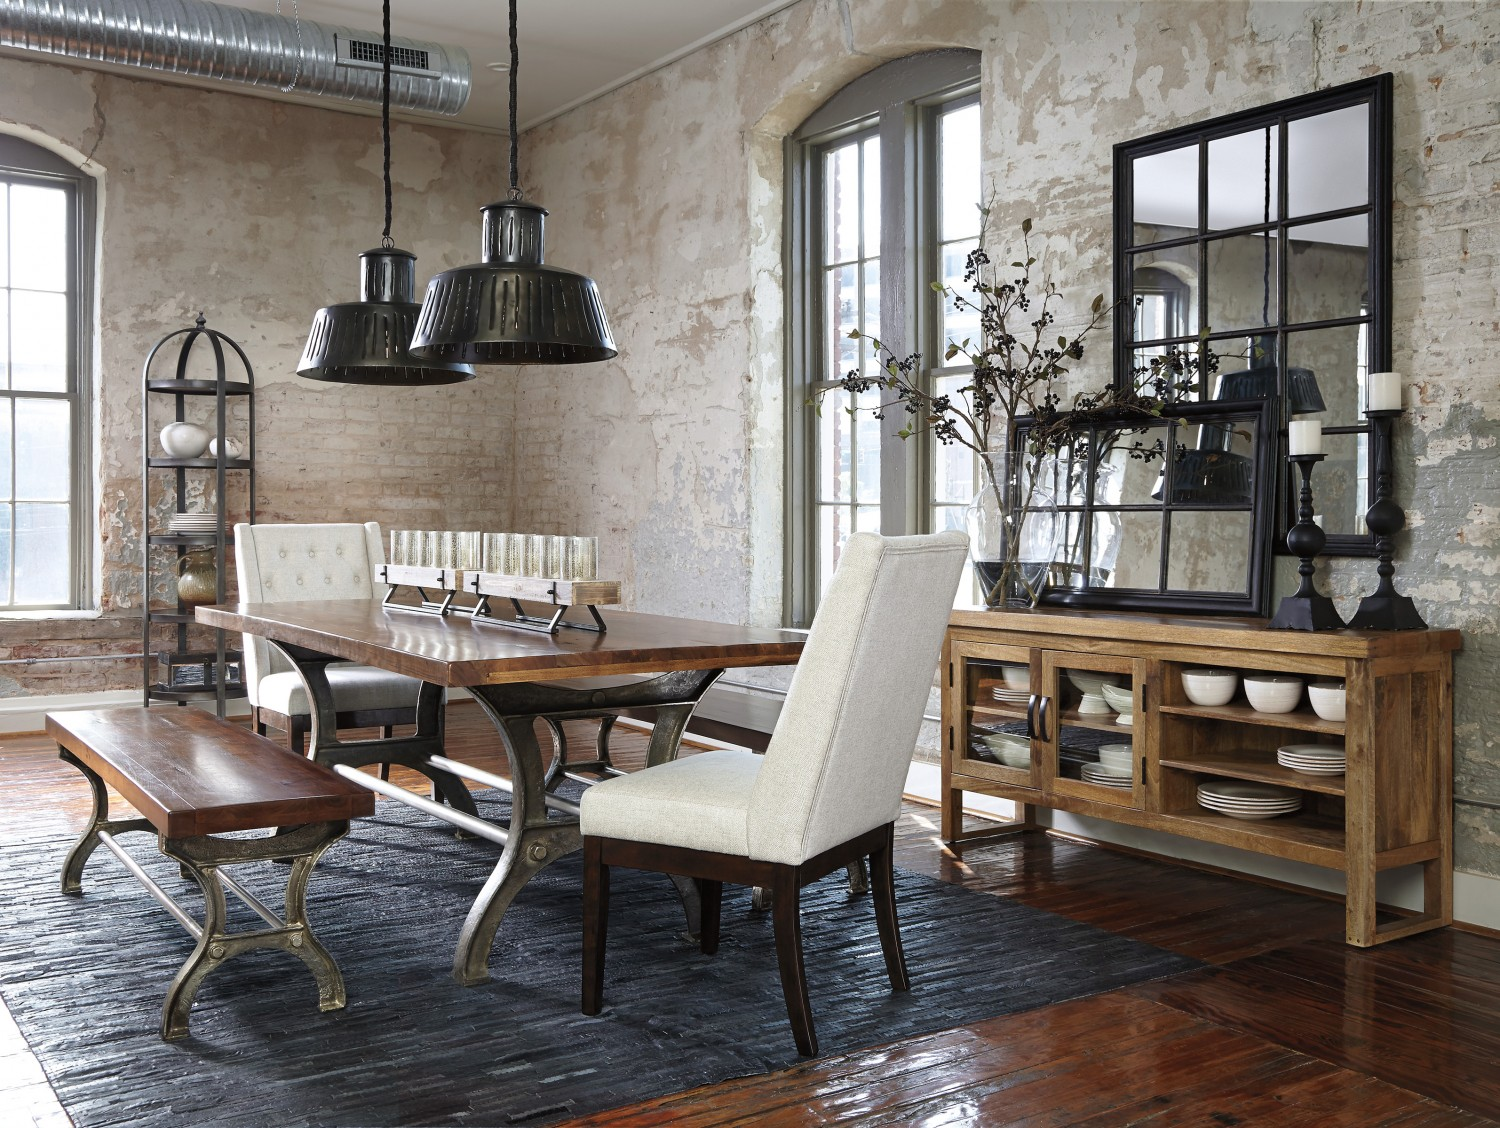 dining room chairs how to mix and match ashley furniture. Black Bedroom Furniture Sets. Home Design Ideas